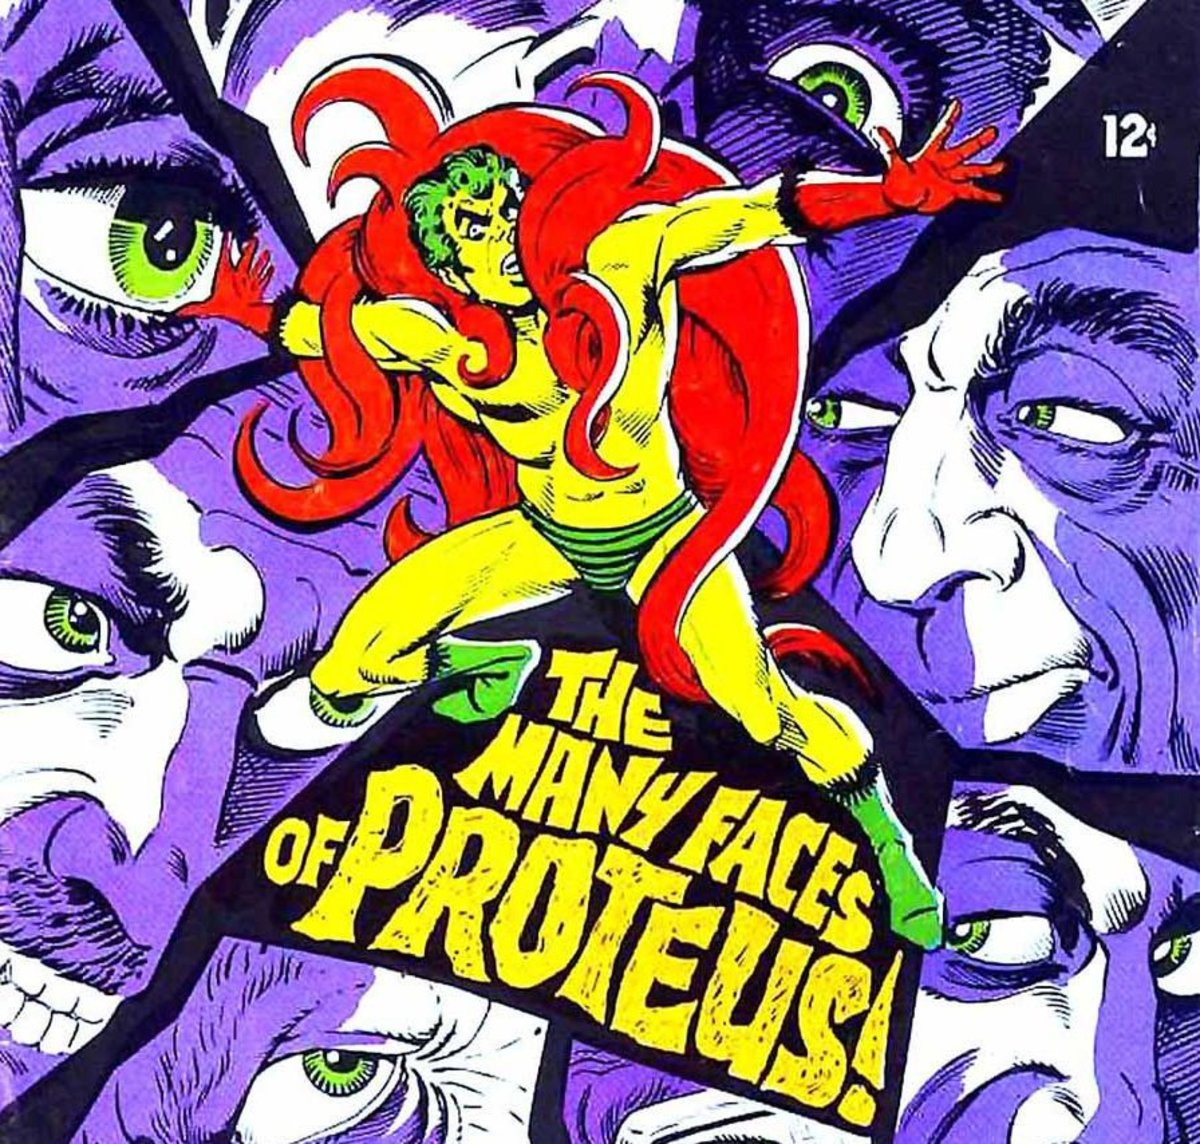 The Creeper by Steve Ditko.